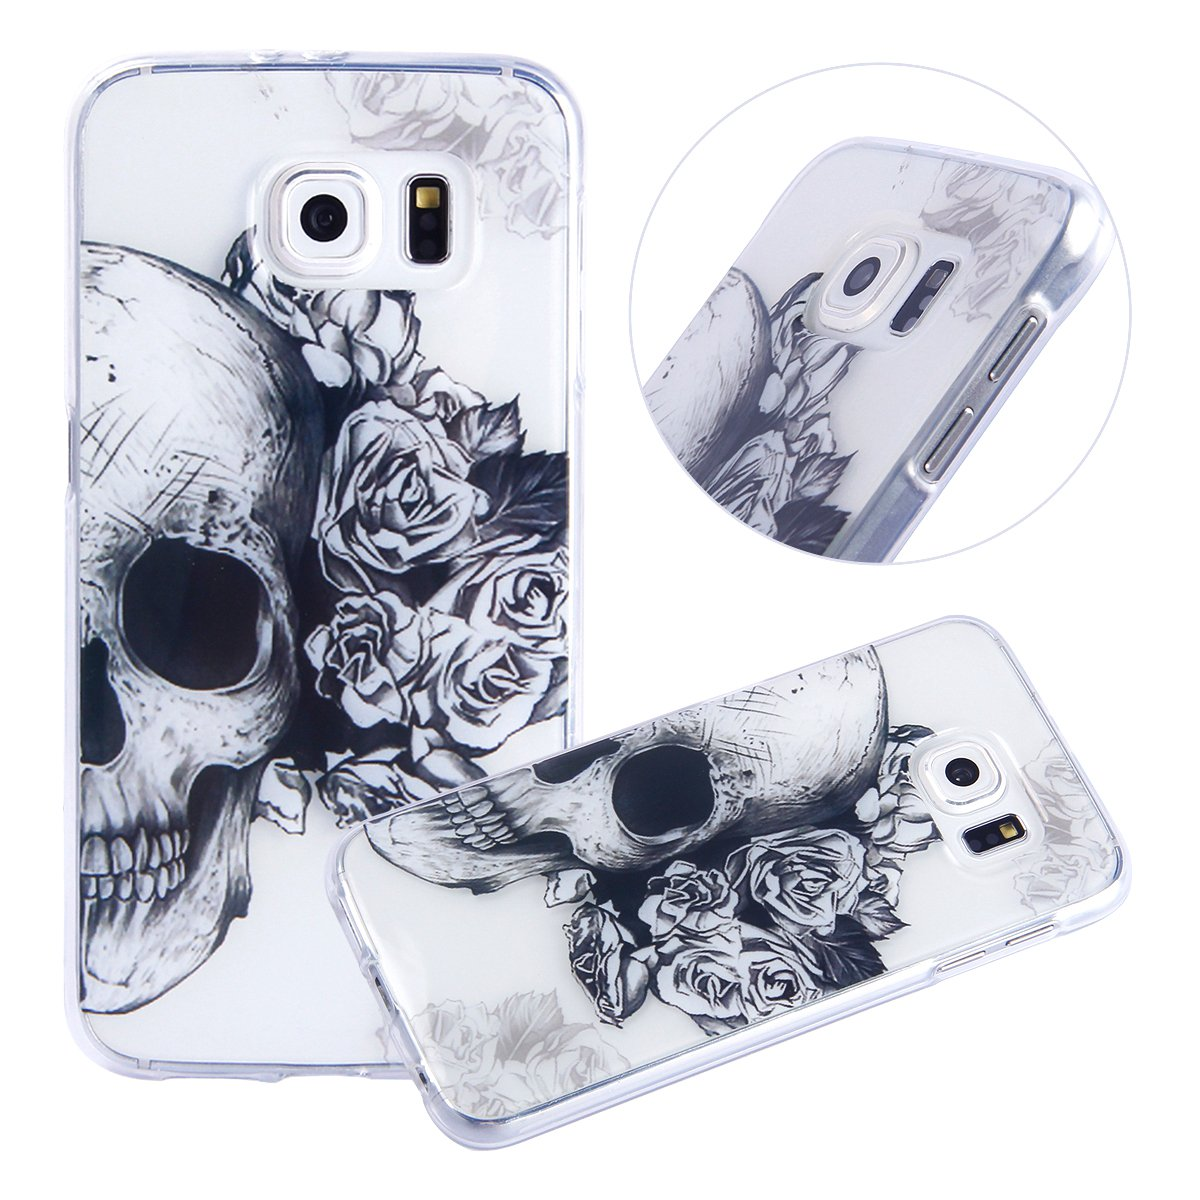 PHEZEN for Samsung Galaxy S6 Case, Samsung Galaxy S6 Clear Case, Cool Flower Skull Design Ultra Thin Anti-Scratch Flexible TPU Gel Rubber Soft Skin Silicone Protective Case Cover